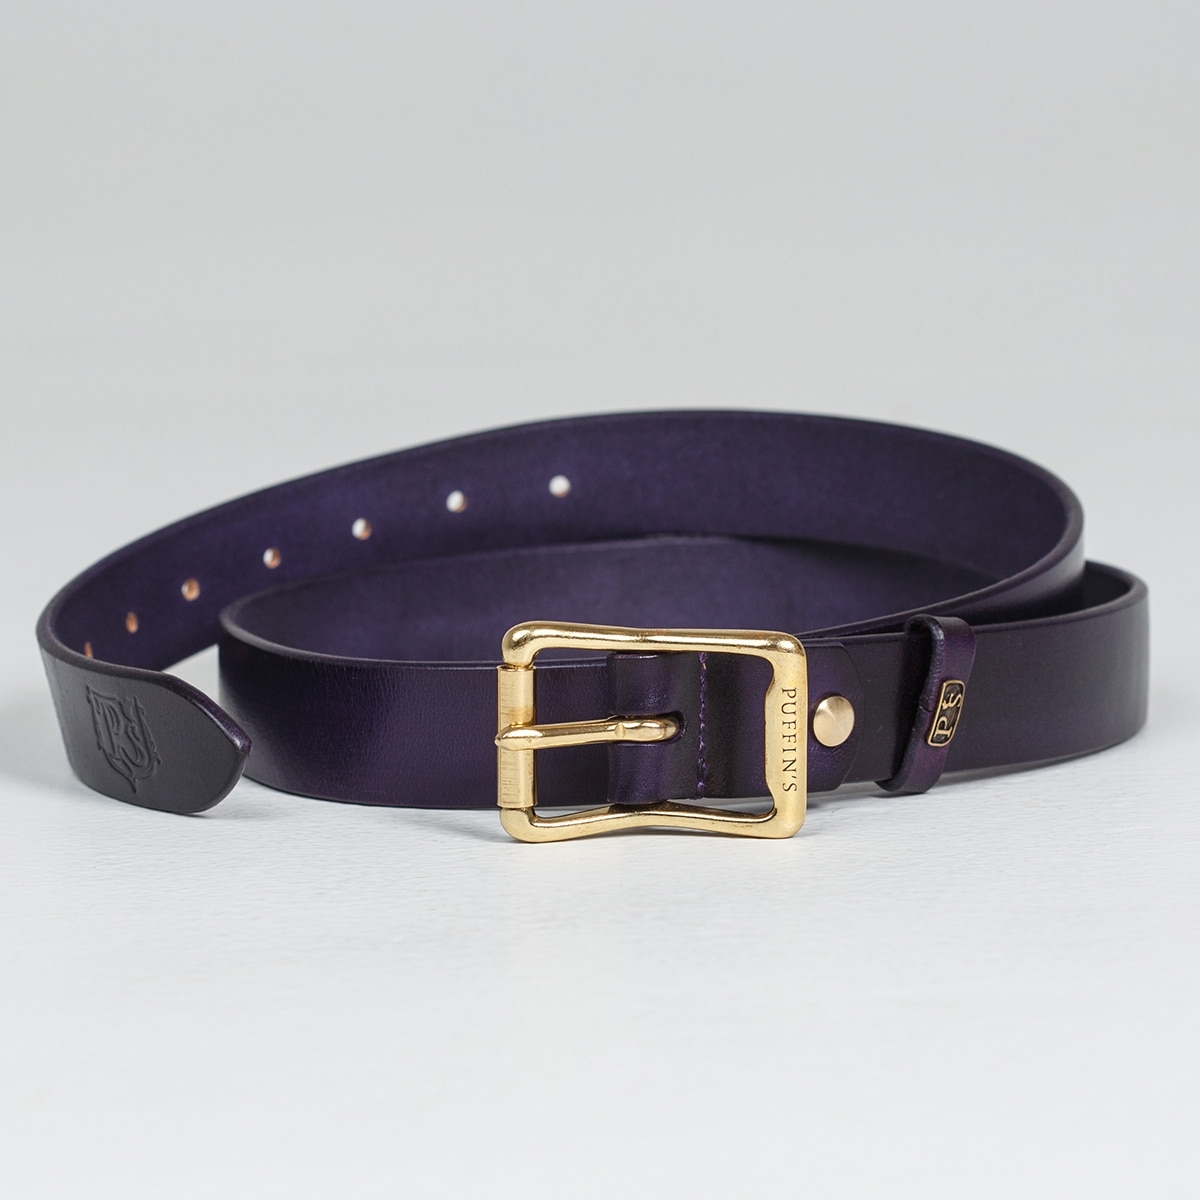 Exquisite belt with roller brass buckle 30mm violet ink